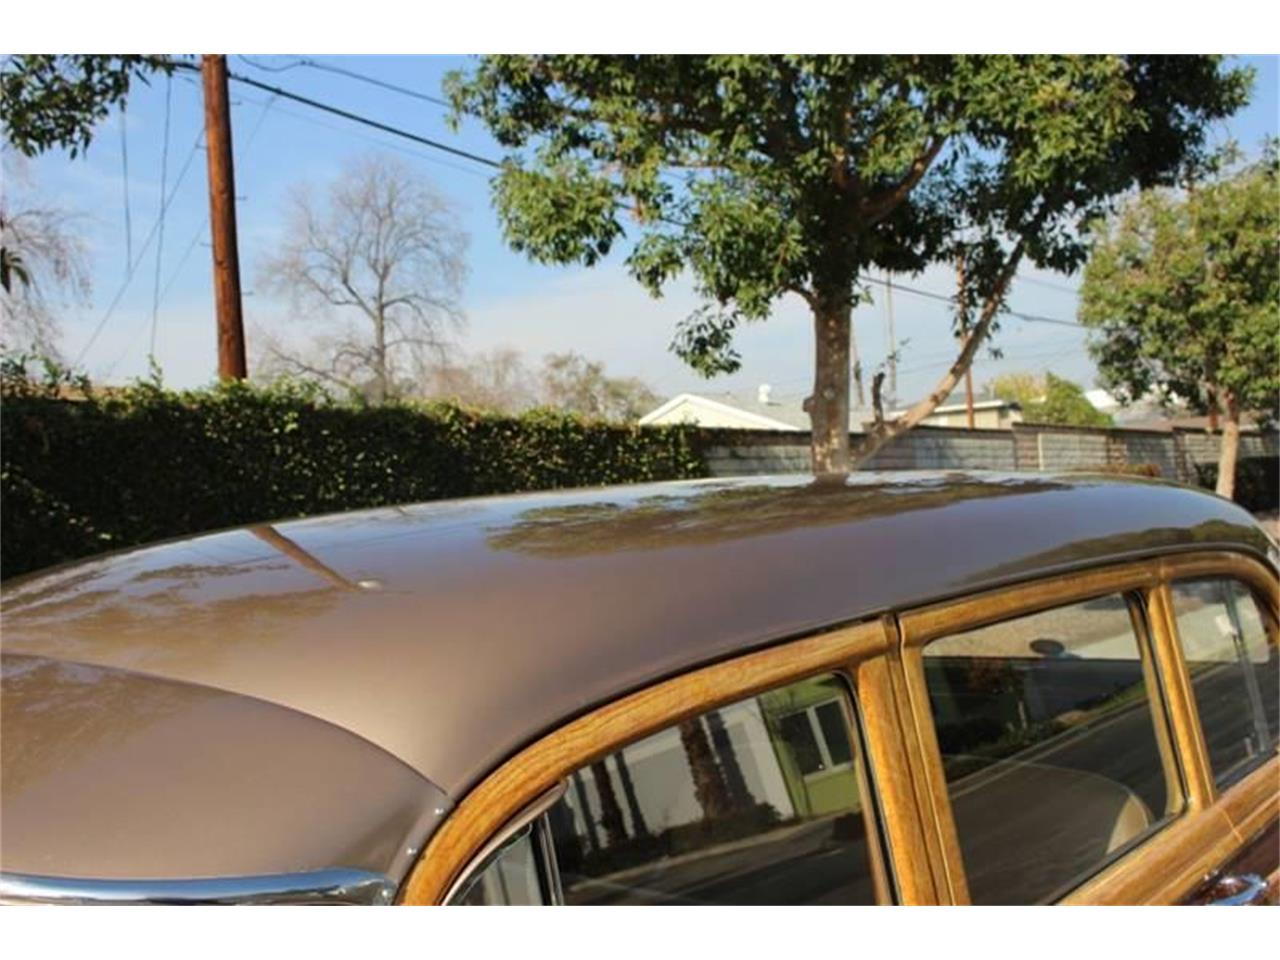 1950 Chevrolet Styleline Deluxe for sale in La Verne, CA – photo 23